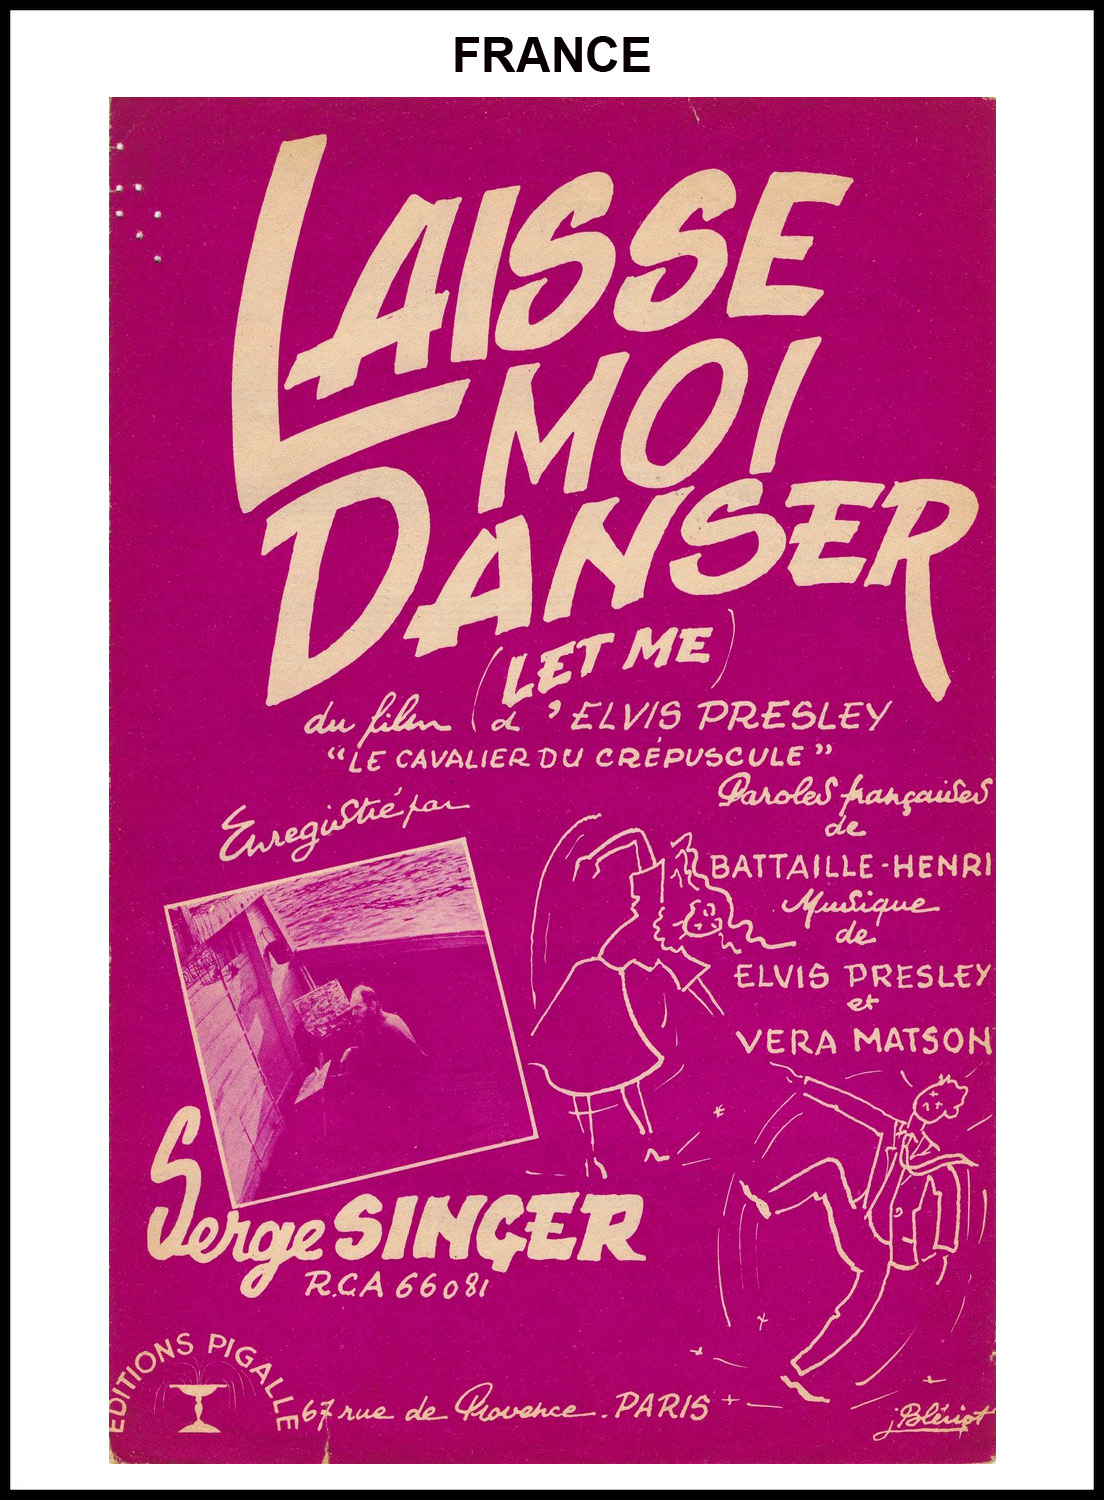 1956 - Let Me (France) (CHRIS GILES COLLECTION)